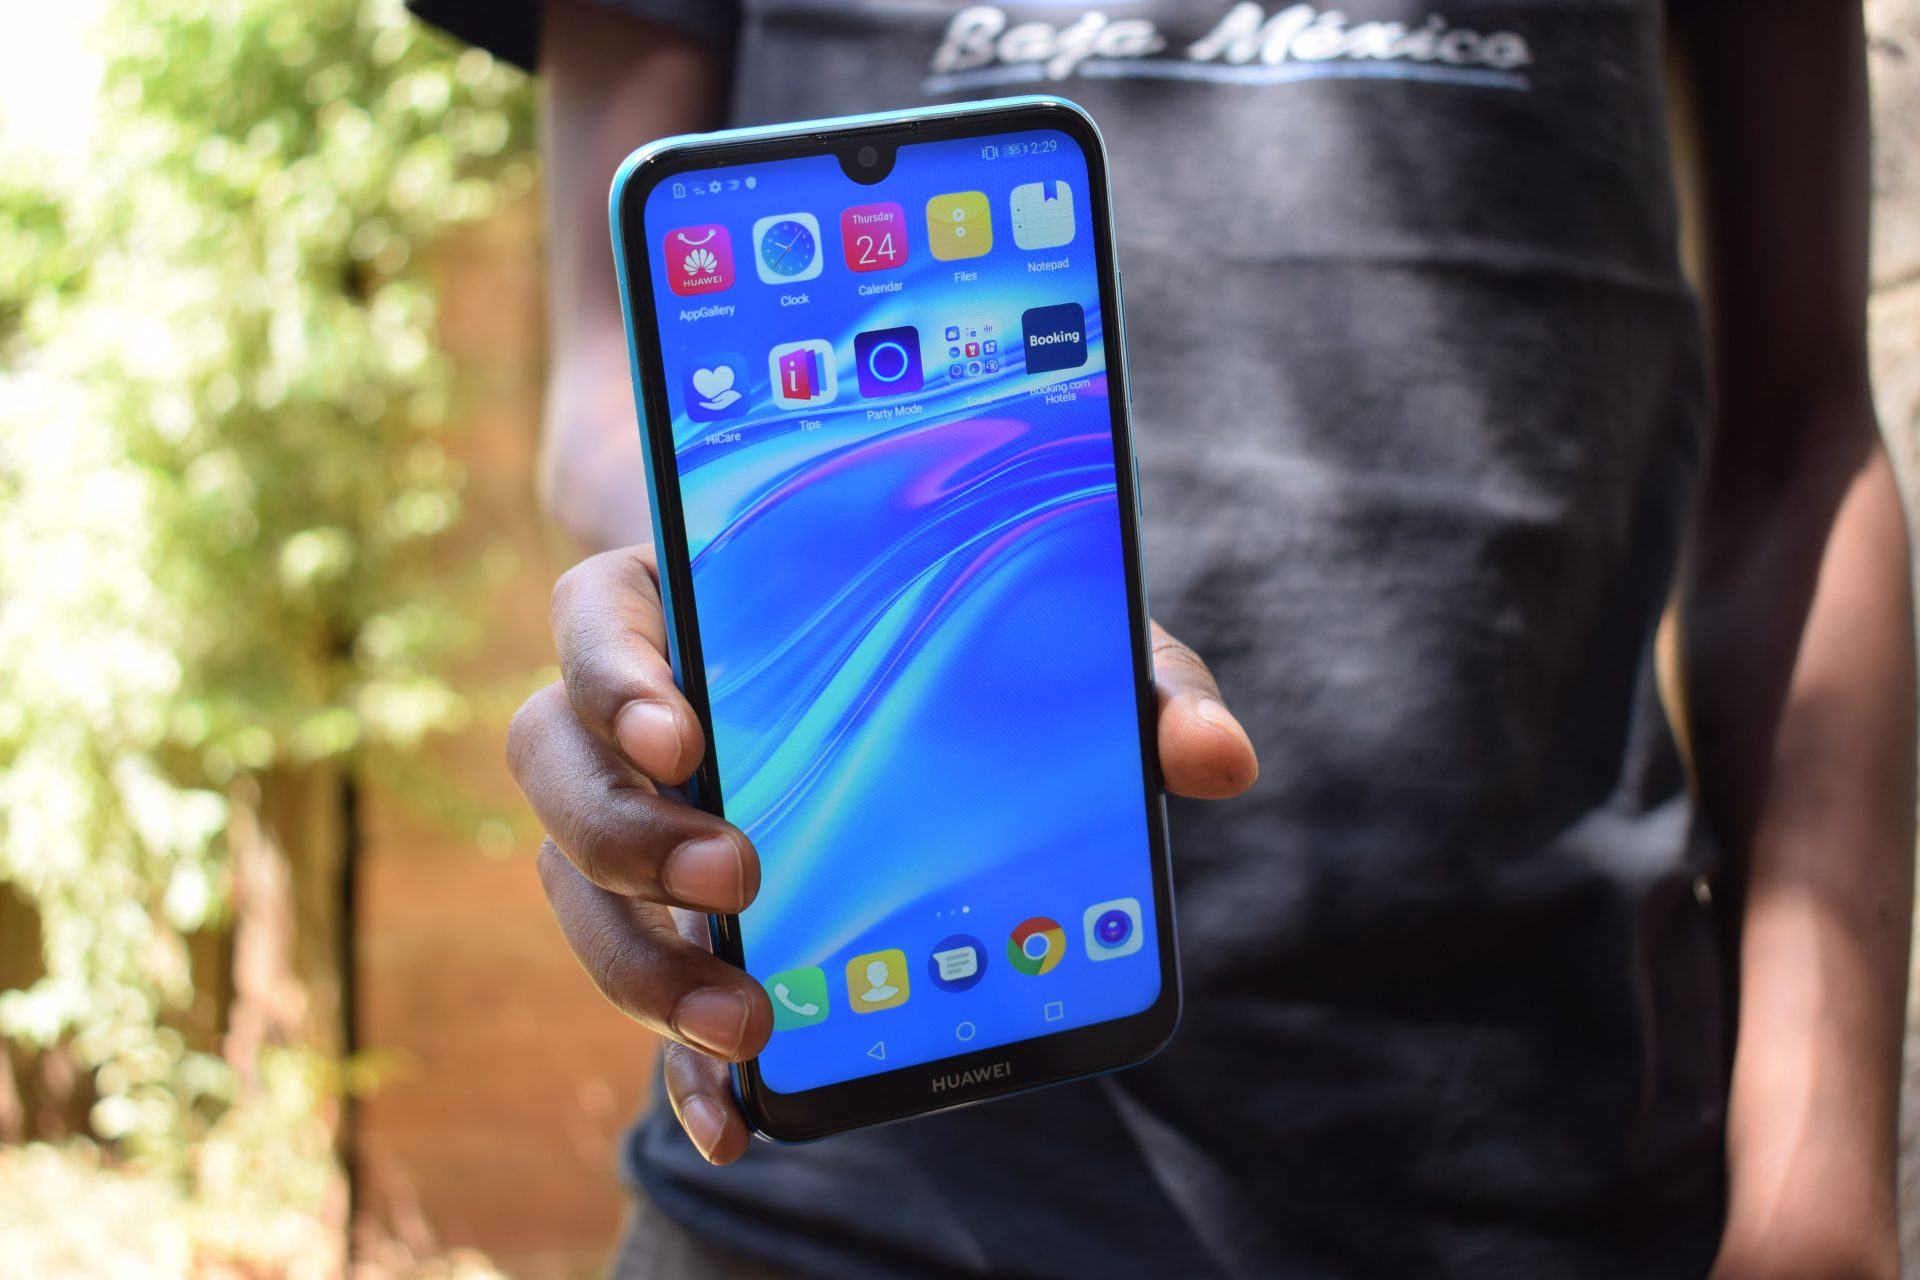 Huawei Y7 Prime 2019 Launched in Kenya with Teardrop Display